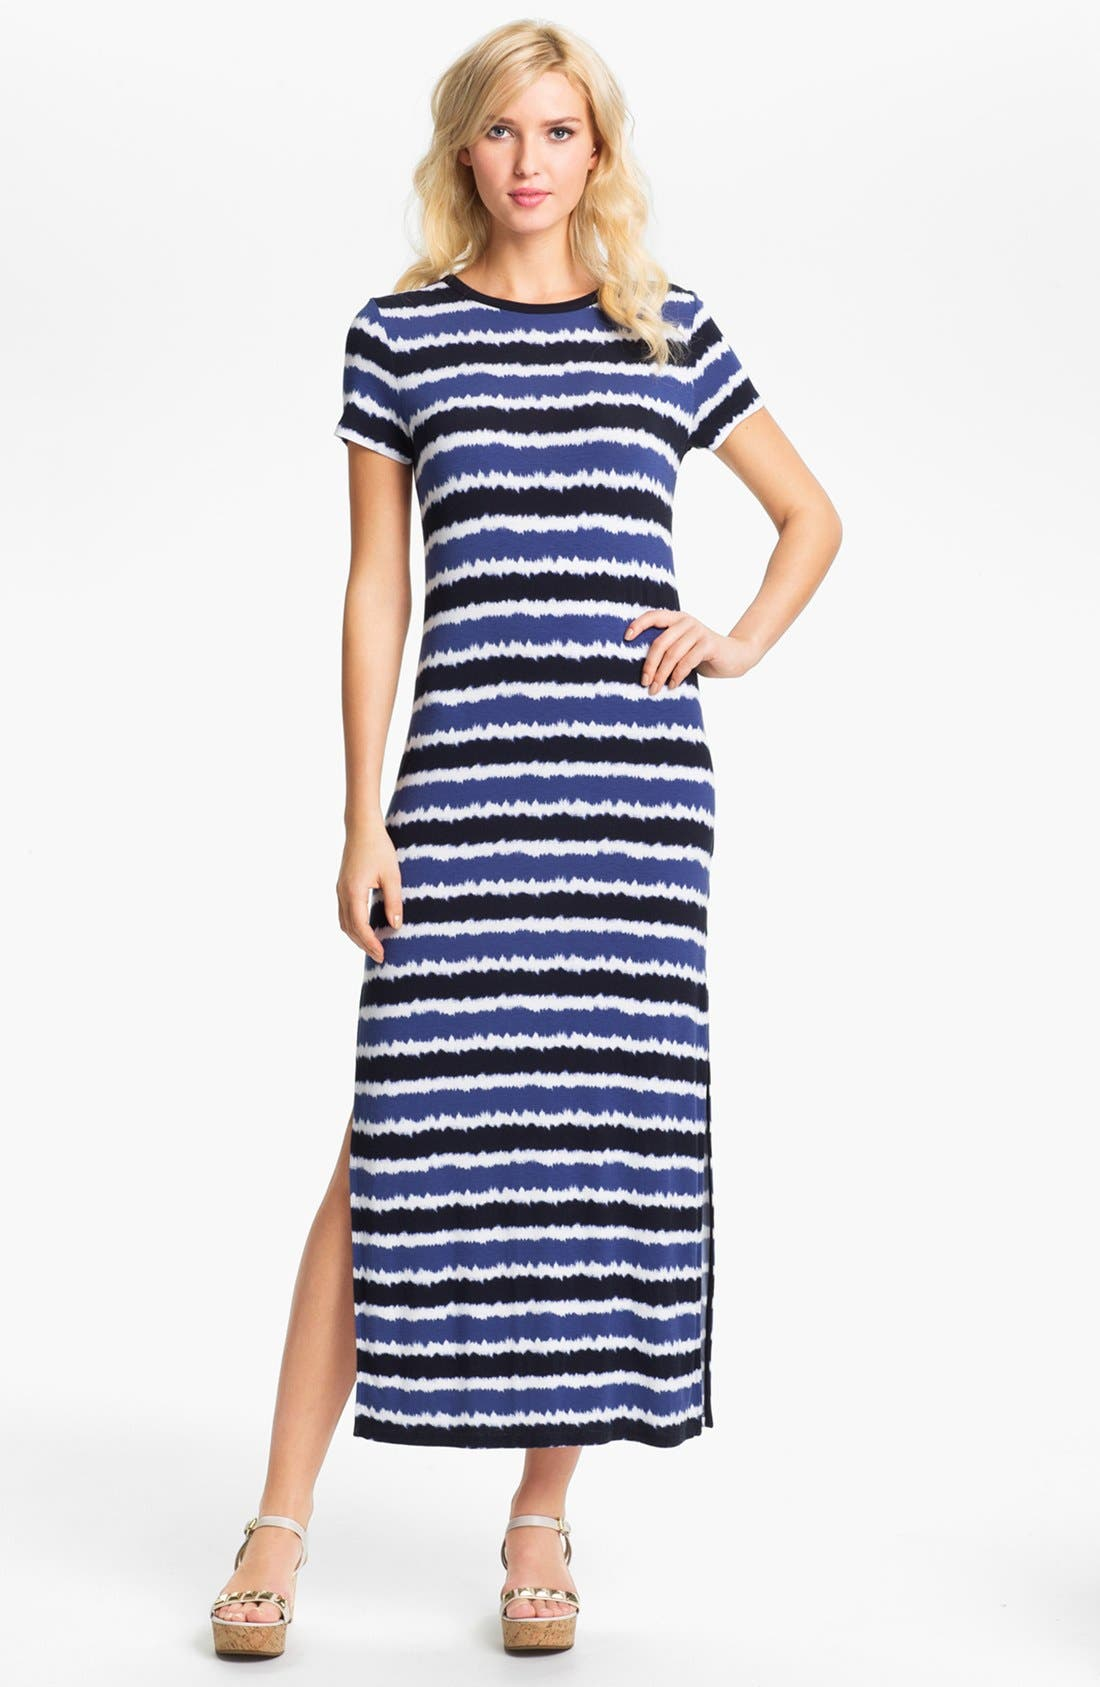 Alternate Image 1 Selected - MICHAEL Michael Kors Crewneck Maxi Dress (Petite)